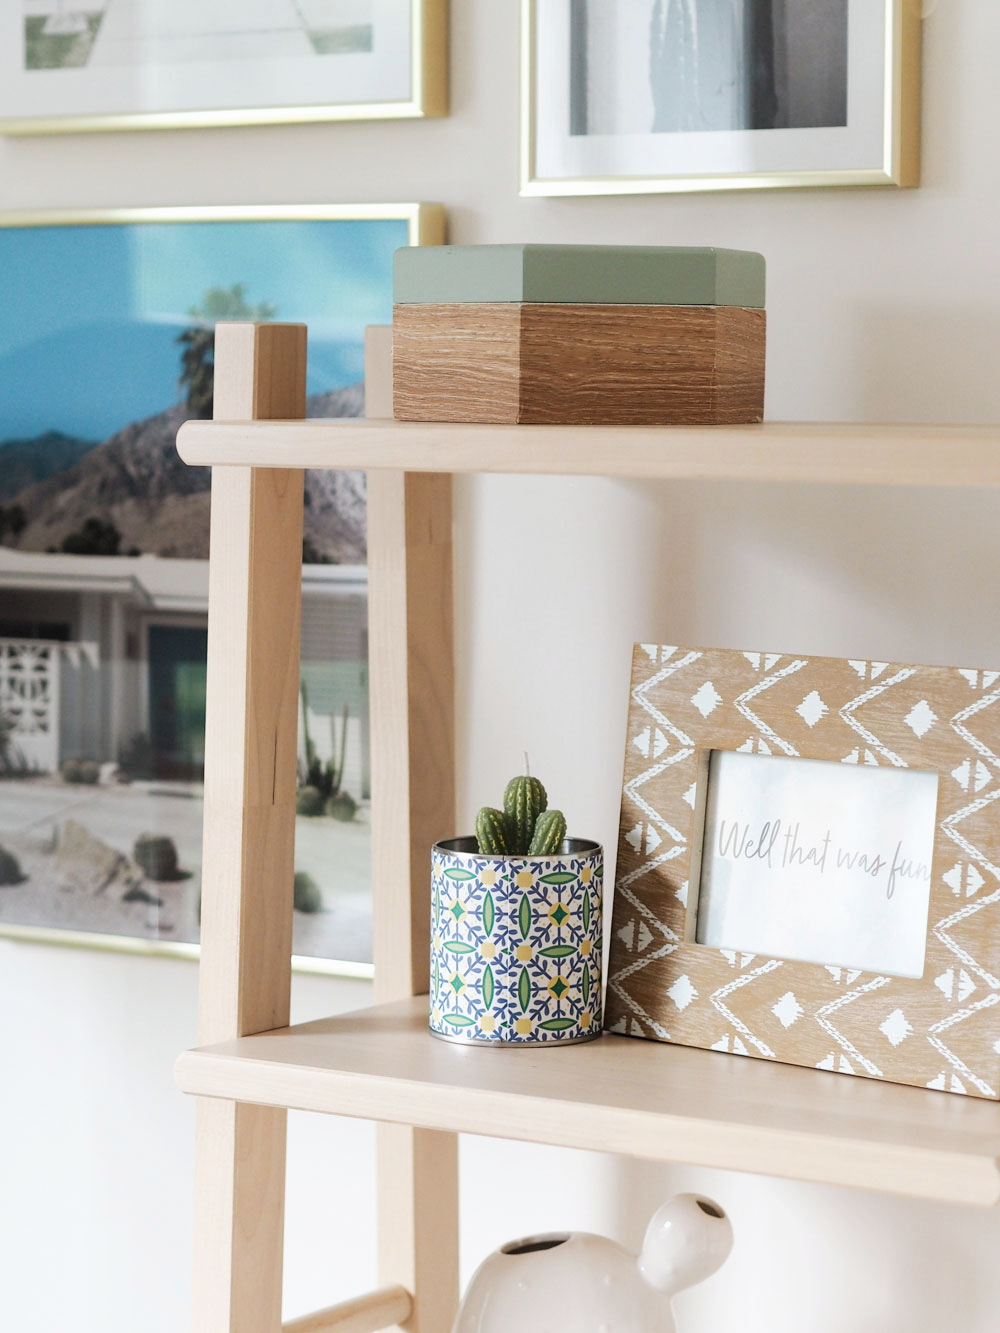 My Californian-inspired home office makeover reveal is finally live, sharing everything I used to decorate a colourful and fun workspace.